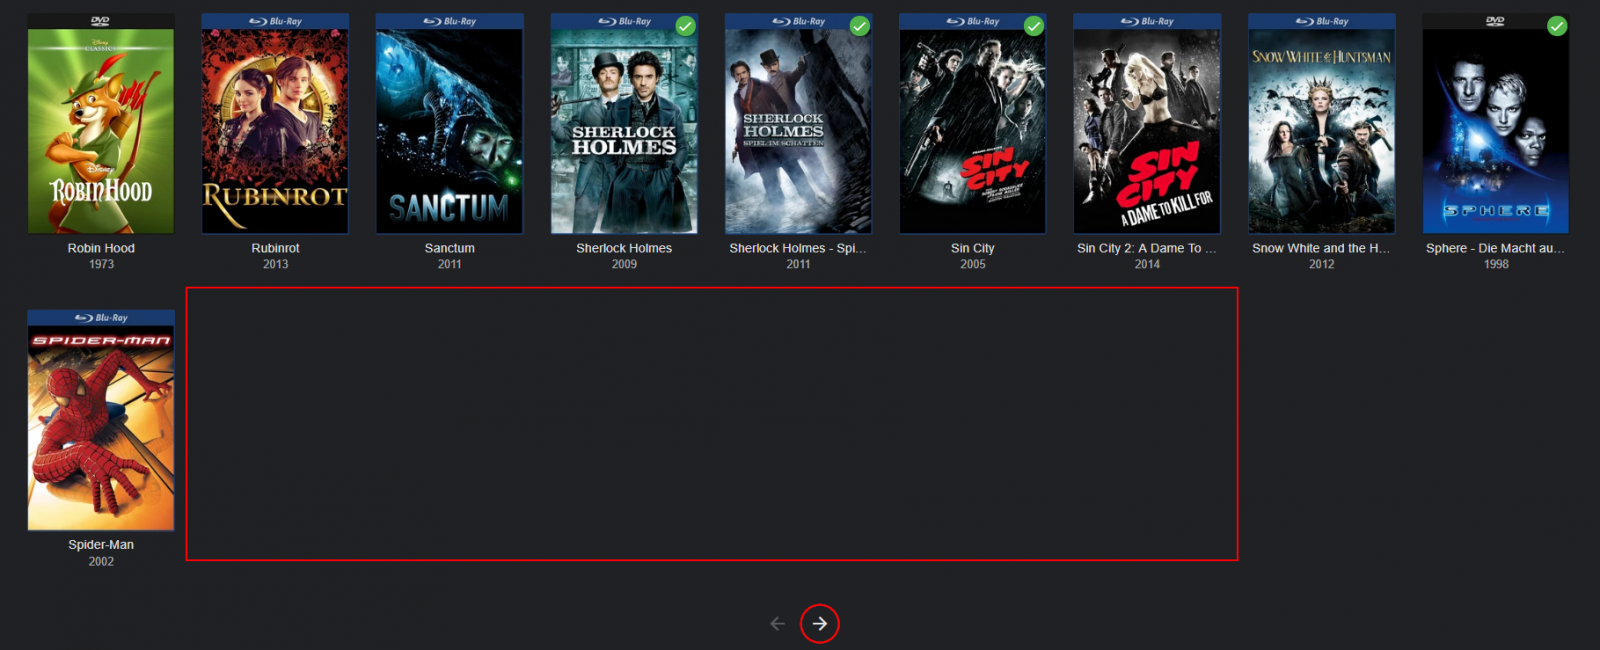 5c87a113bb711_2019031213_04_04Movies.png